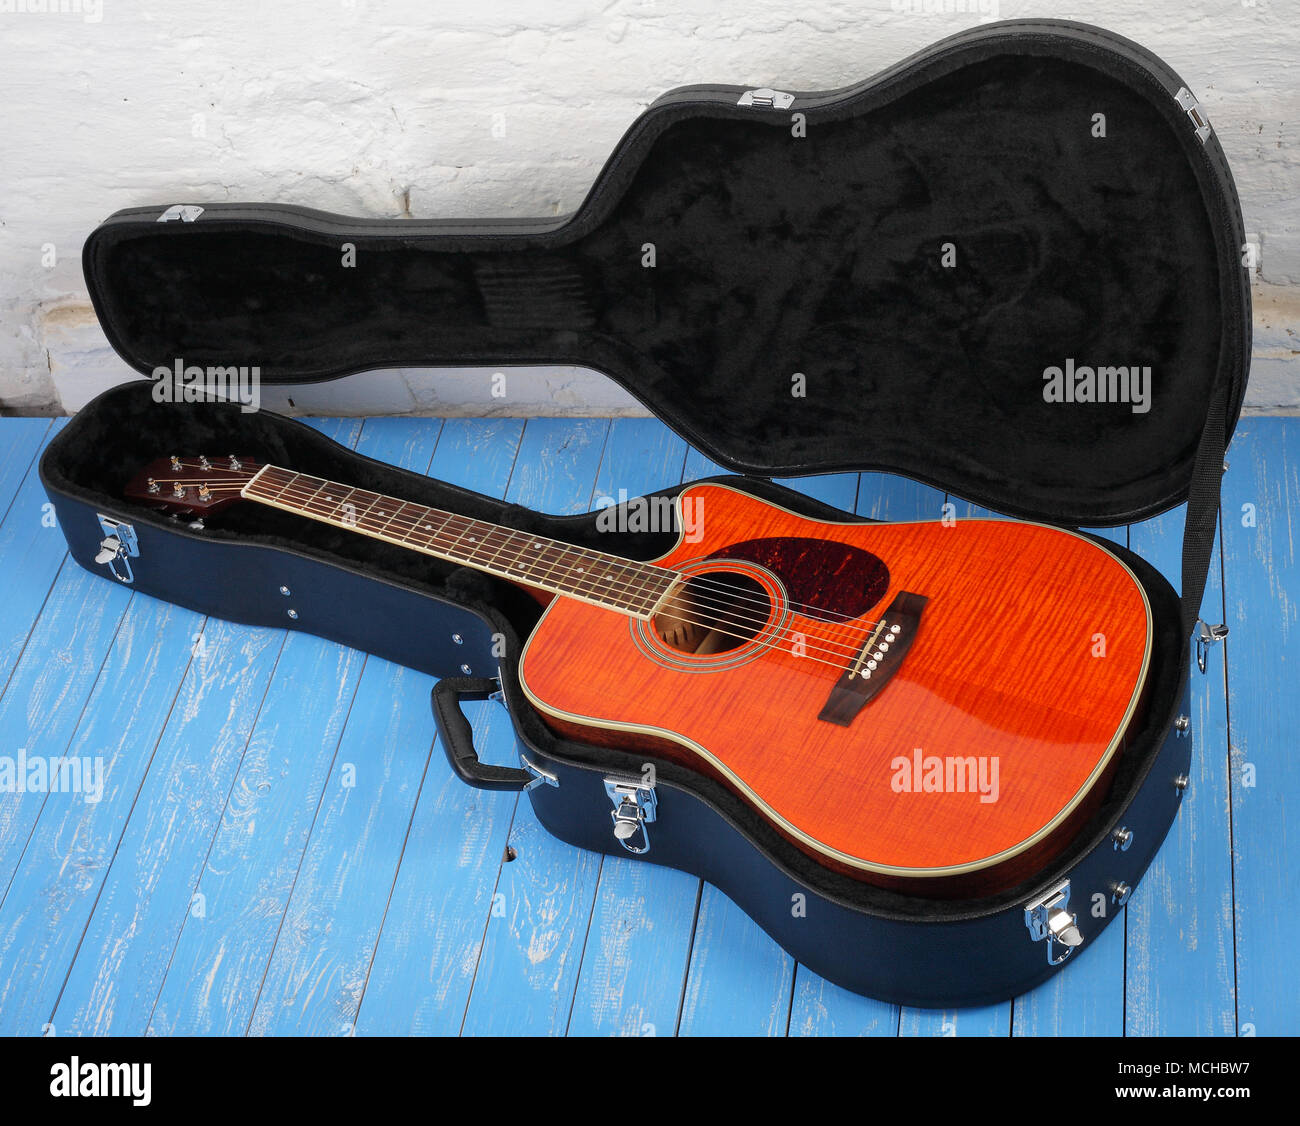 Musical instrument - Orange acoustic guitar in hard case on a blue wood, and white brock wall background. Stock Photo